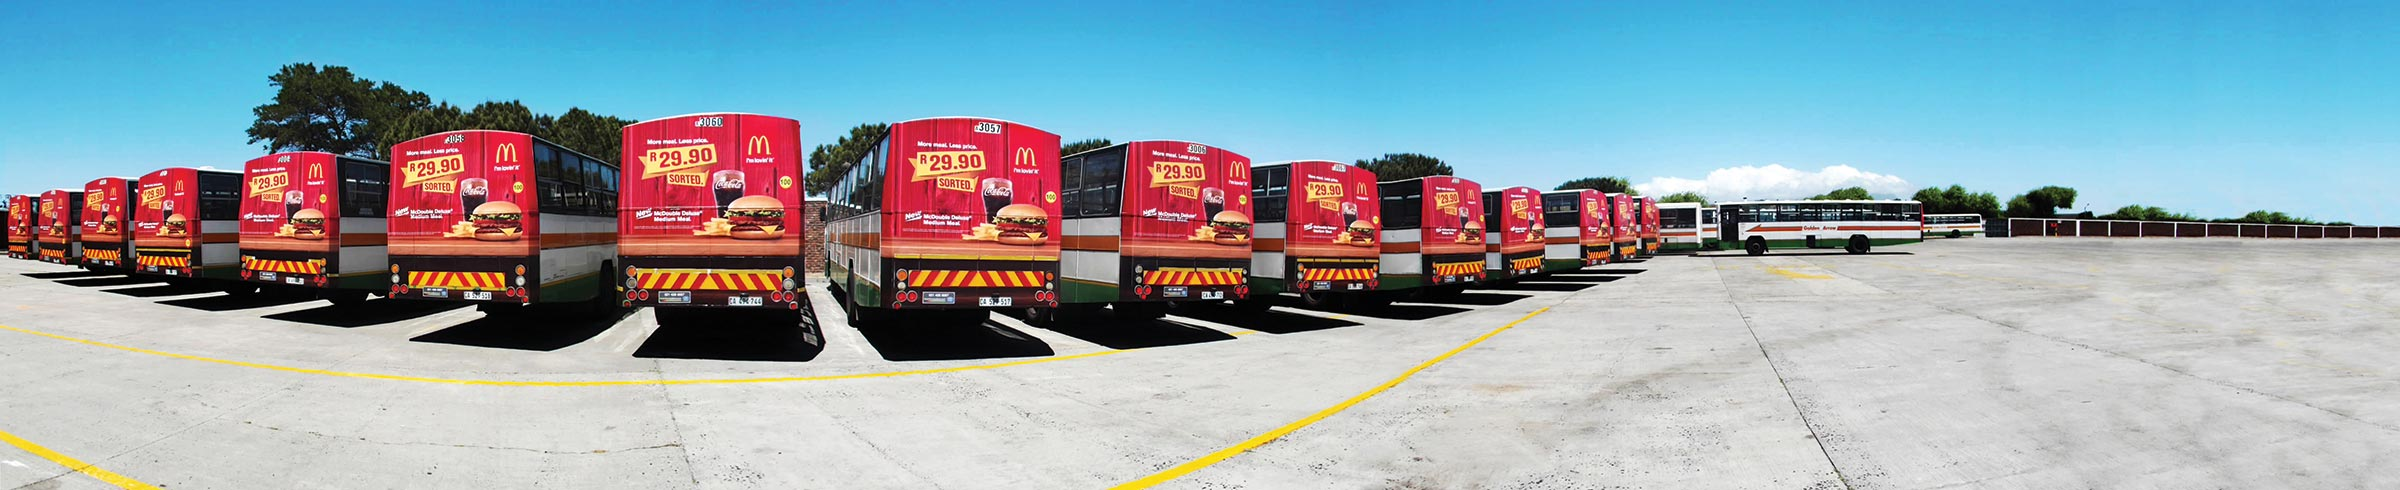 Macdonalds Bus Campaign panoramic